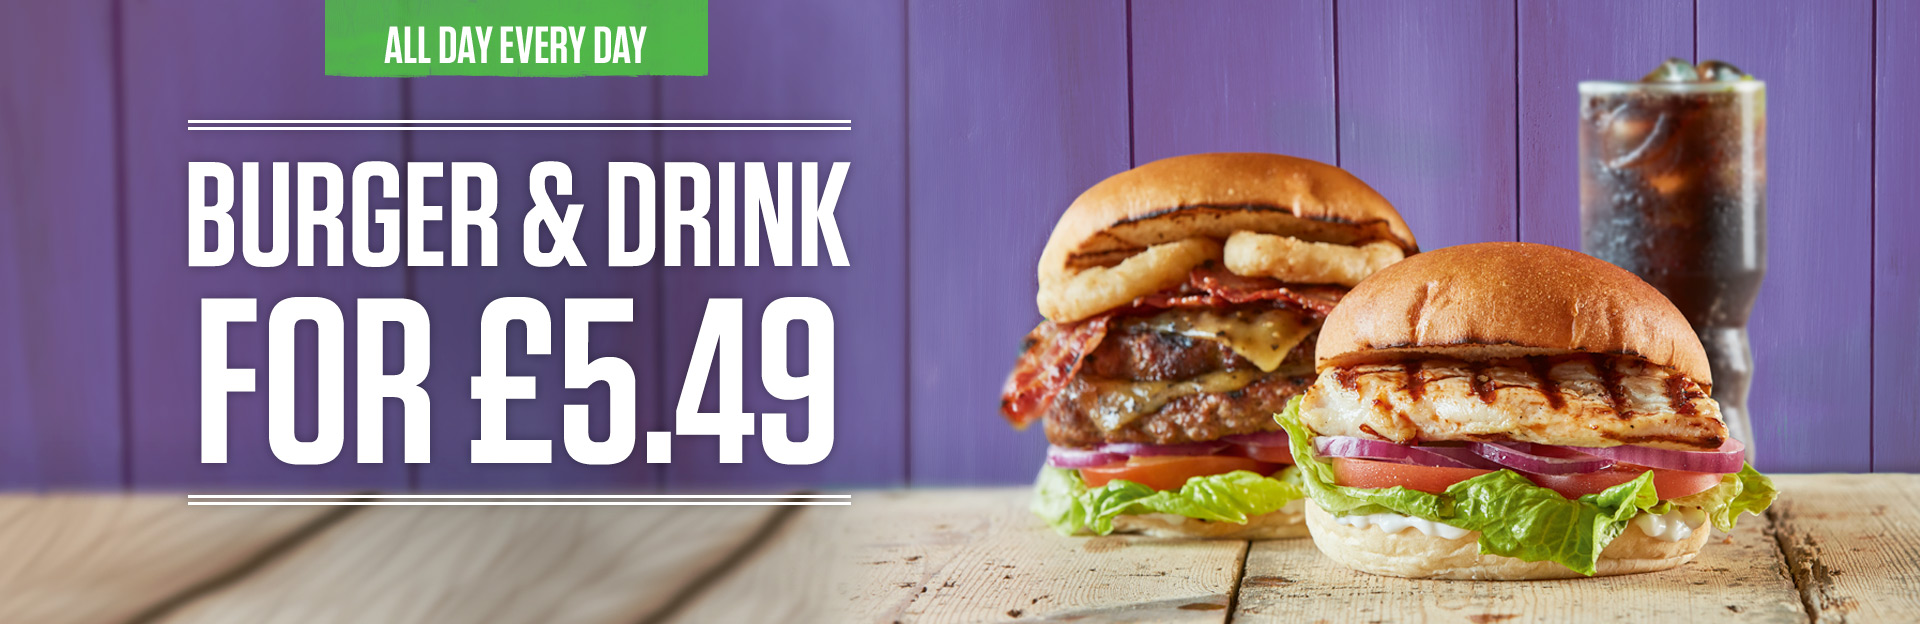 Burger and Drink Deal at The Birley Hotel